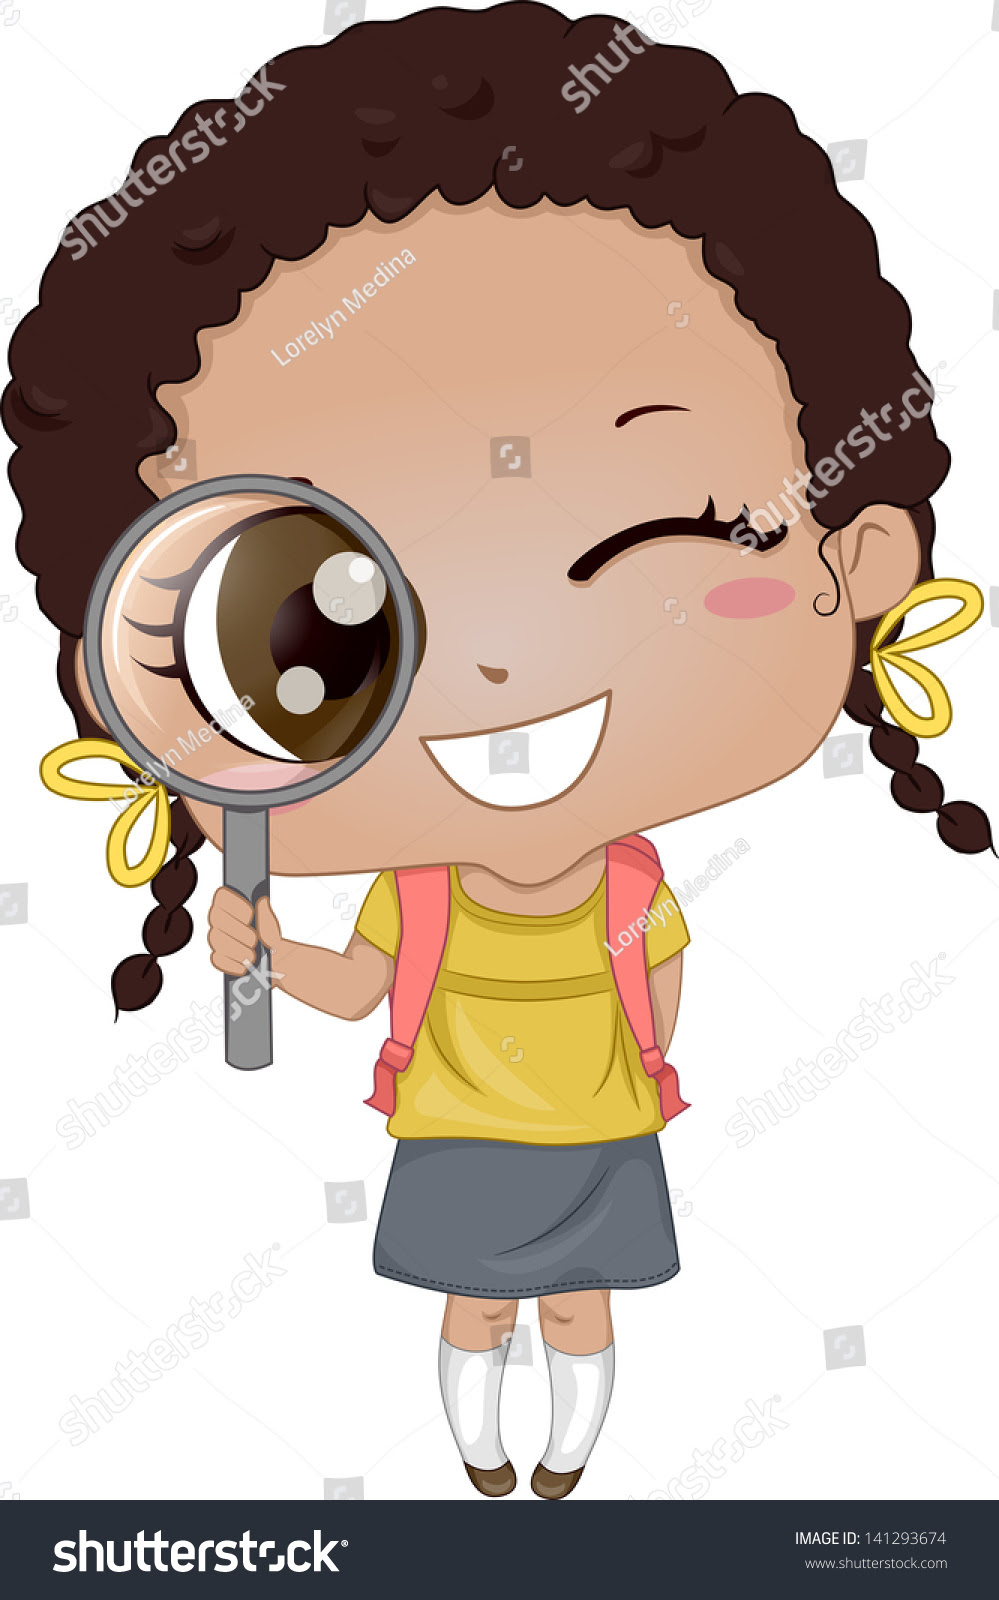 Download Illustration Of Cute African-American Girl Holding A ...